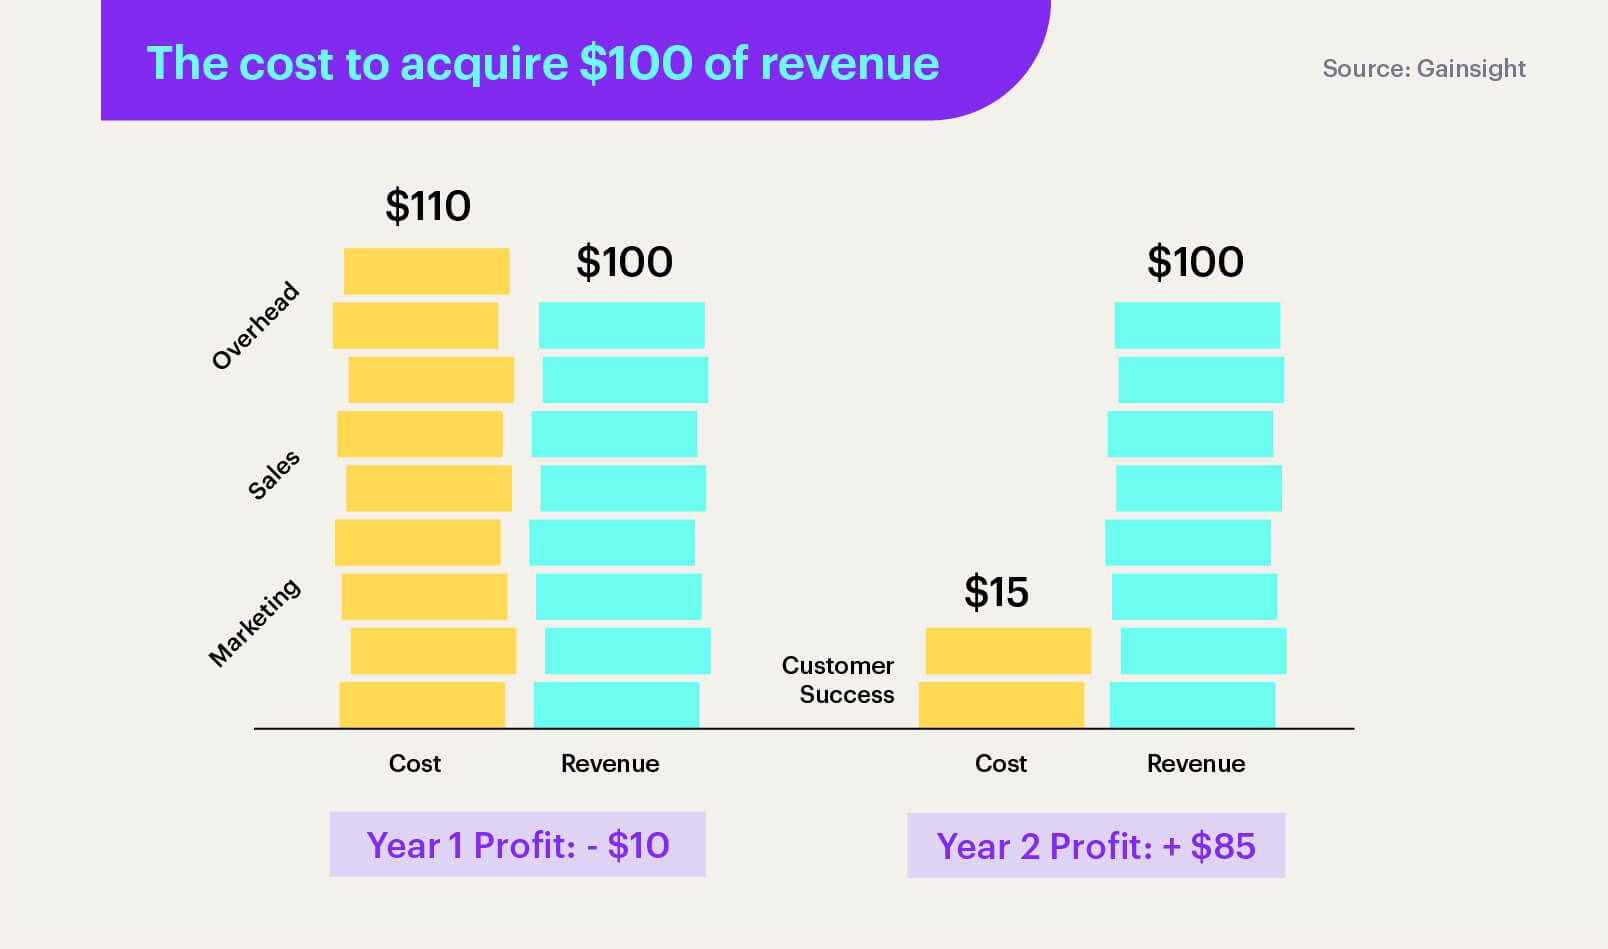 The cost to acquire $100 of revenue